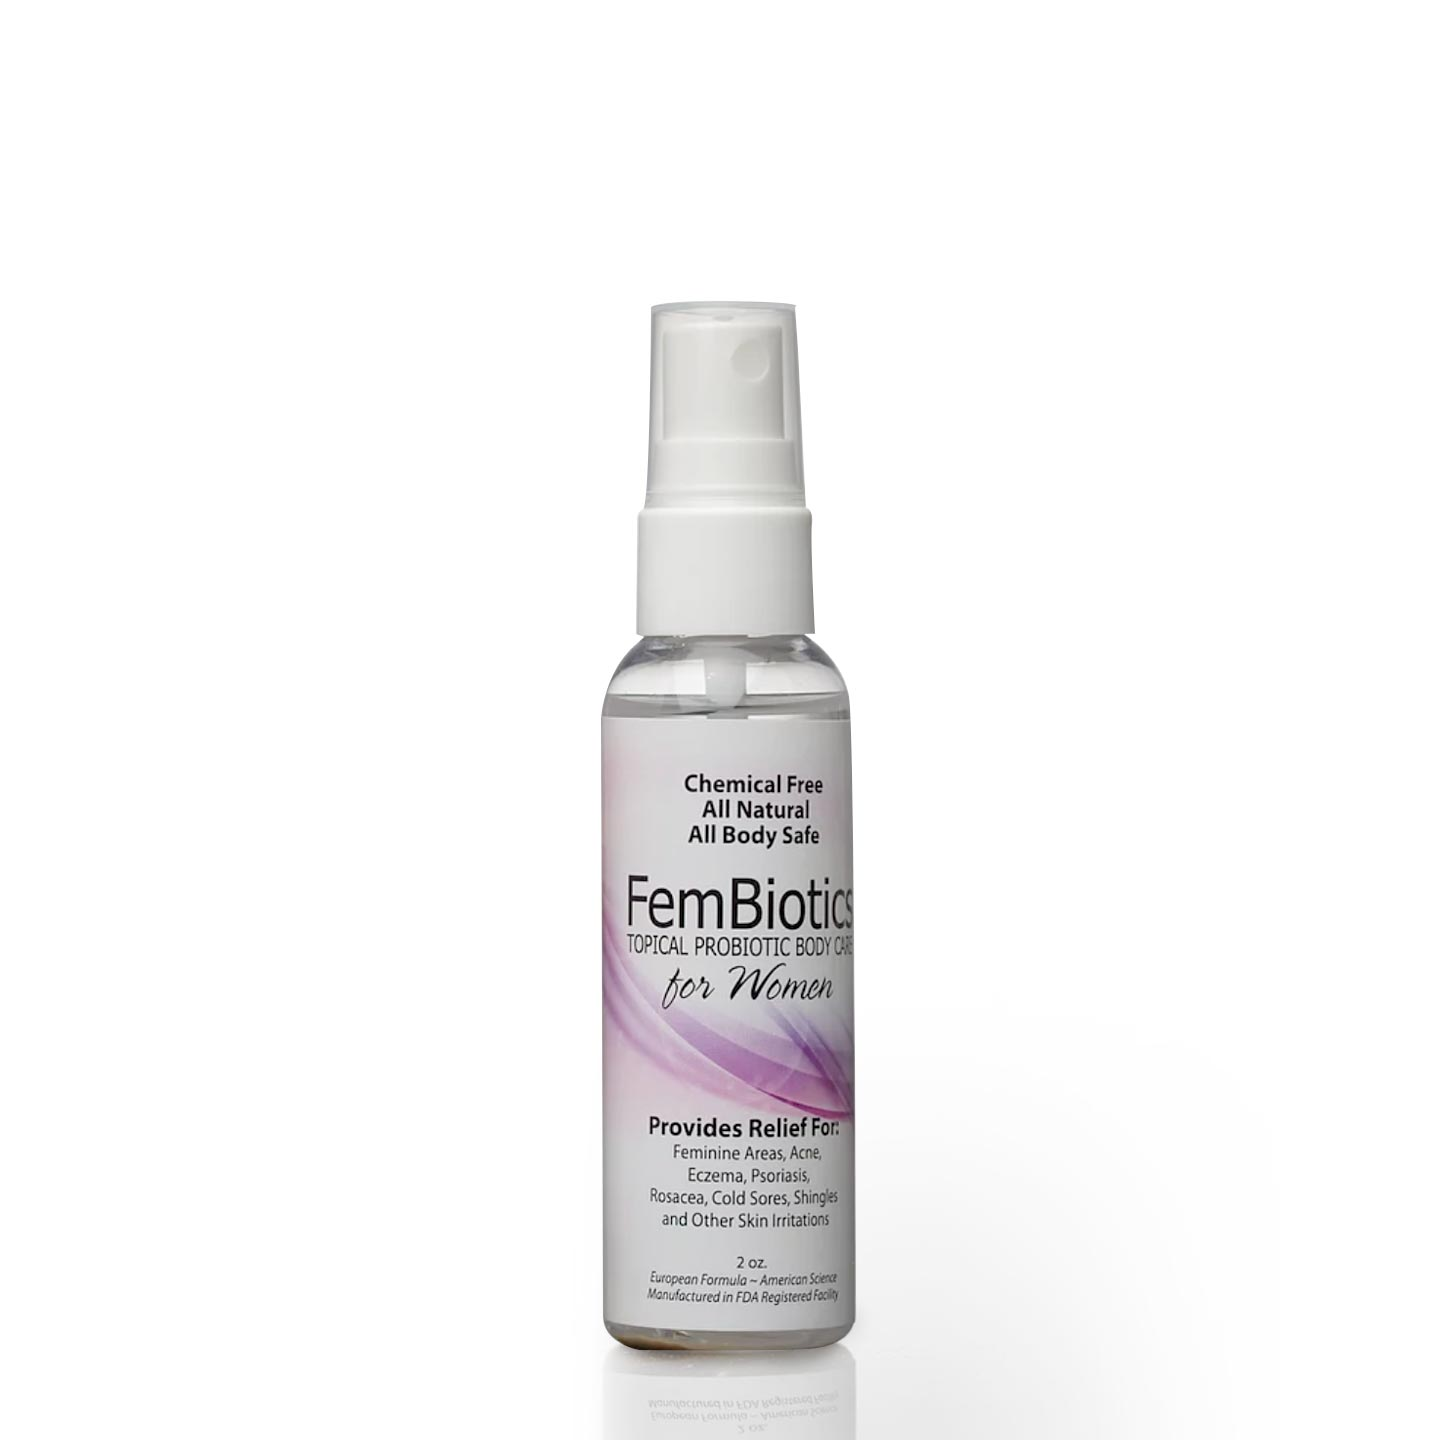 Fembiotics Natural Probiotic Skin Care Spray | Siani Skin Care Probiotic